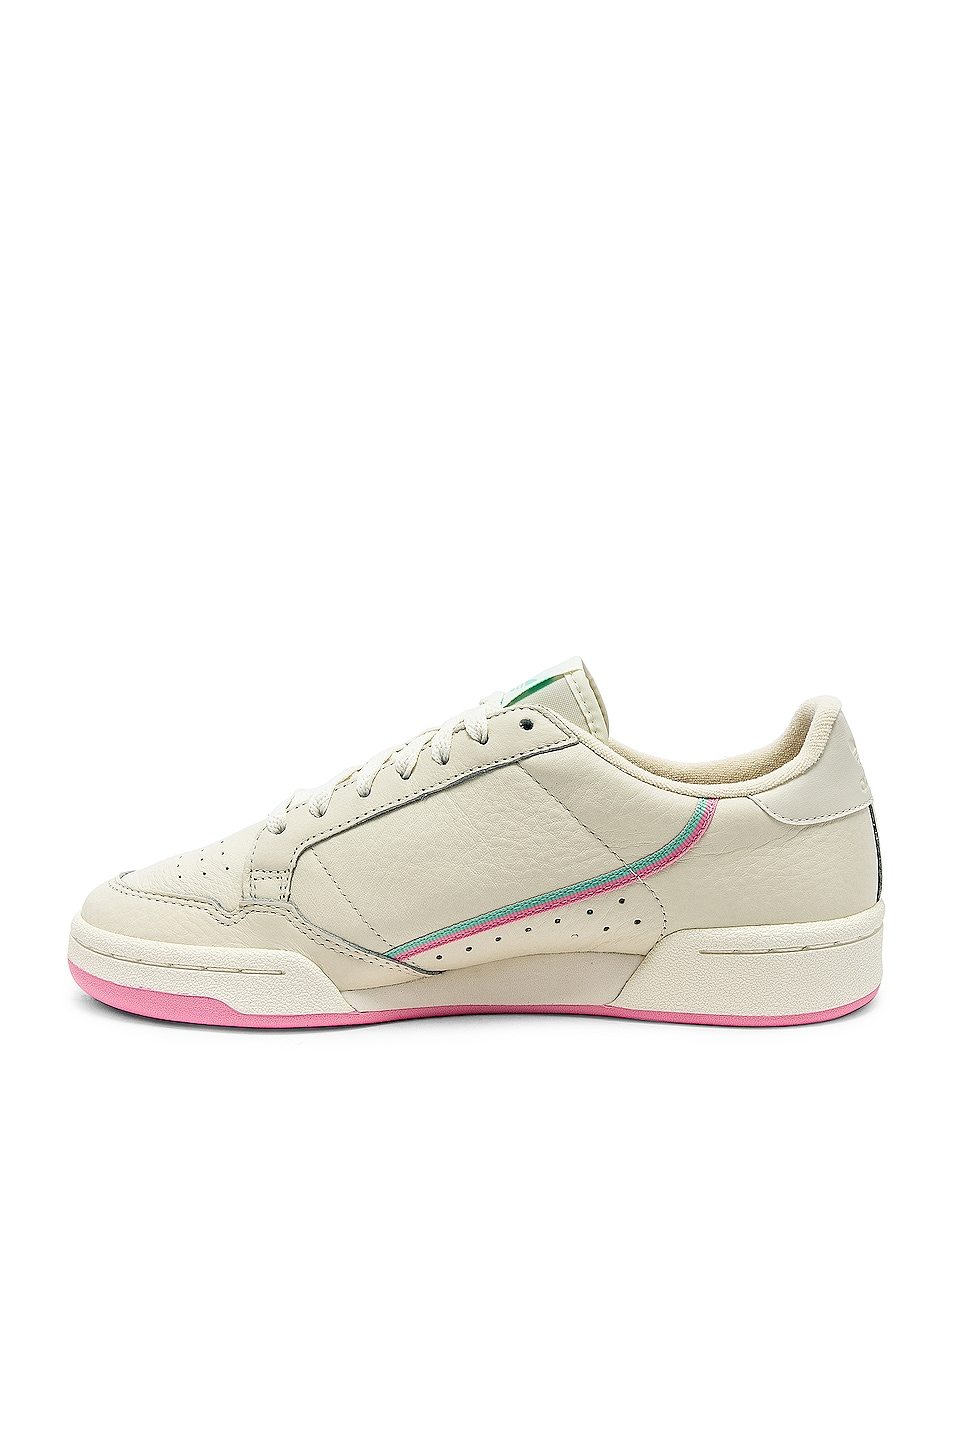 Image 5 of adidas Originals Continental 80 in Off White & Pink